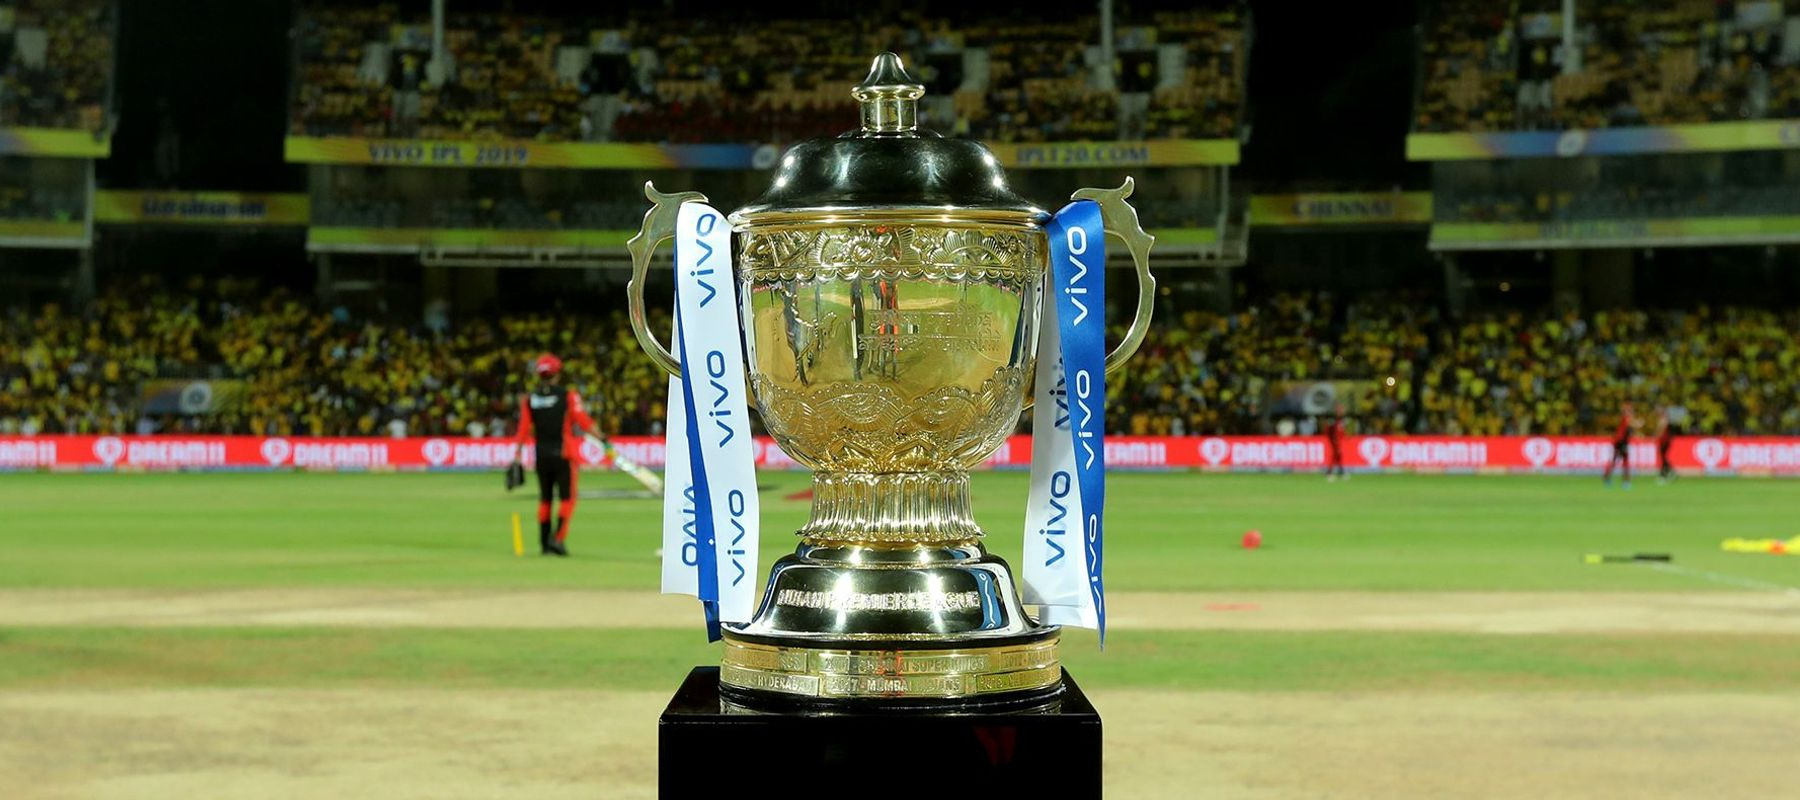 IPL 2022 will feature two new teams